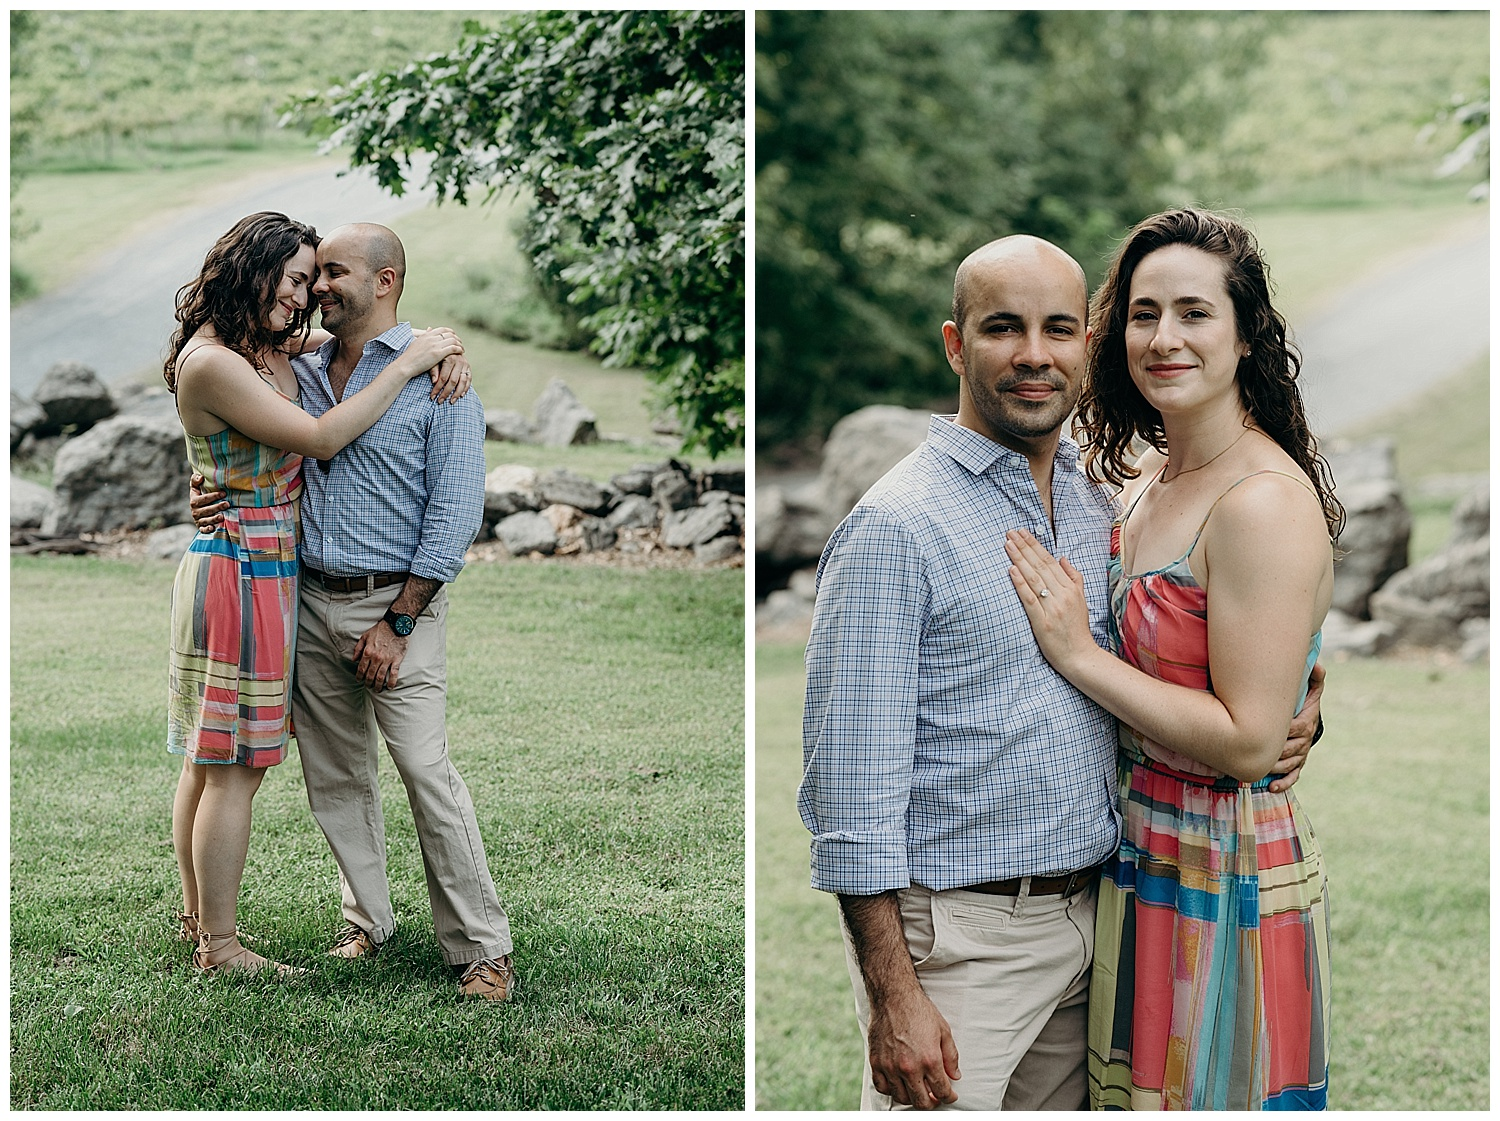 MEGAN-GRAHAM-PHOTOGRAPHY-DC-VIRGINIA-SURPRISE-PROPOSAL-ENGAGEMENT-PARTY-LOST-CREEK-WINERY-LUIS-ISHA13.jpg